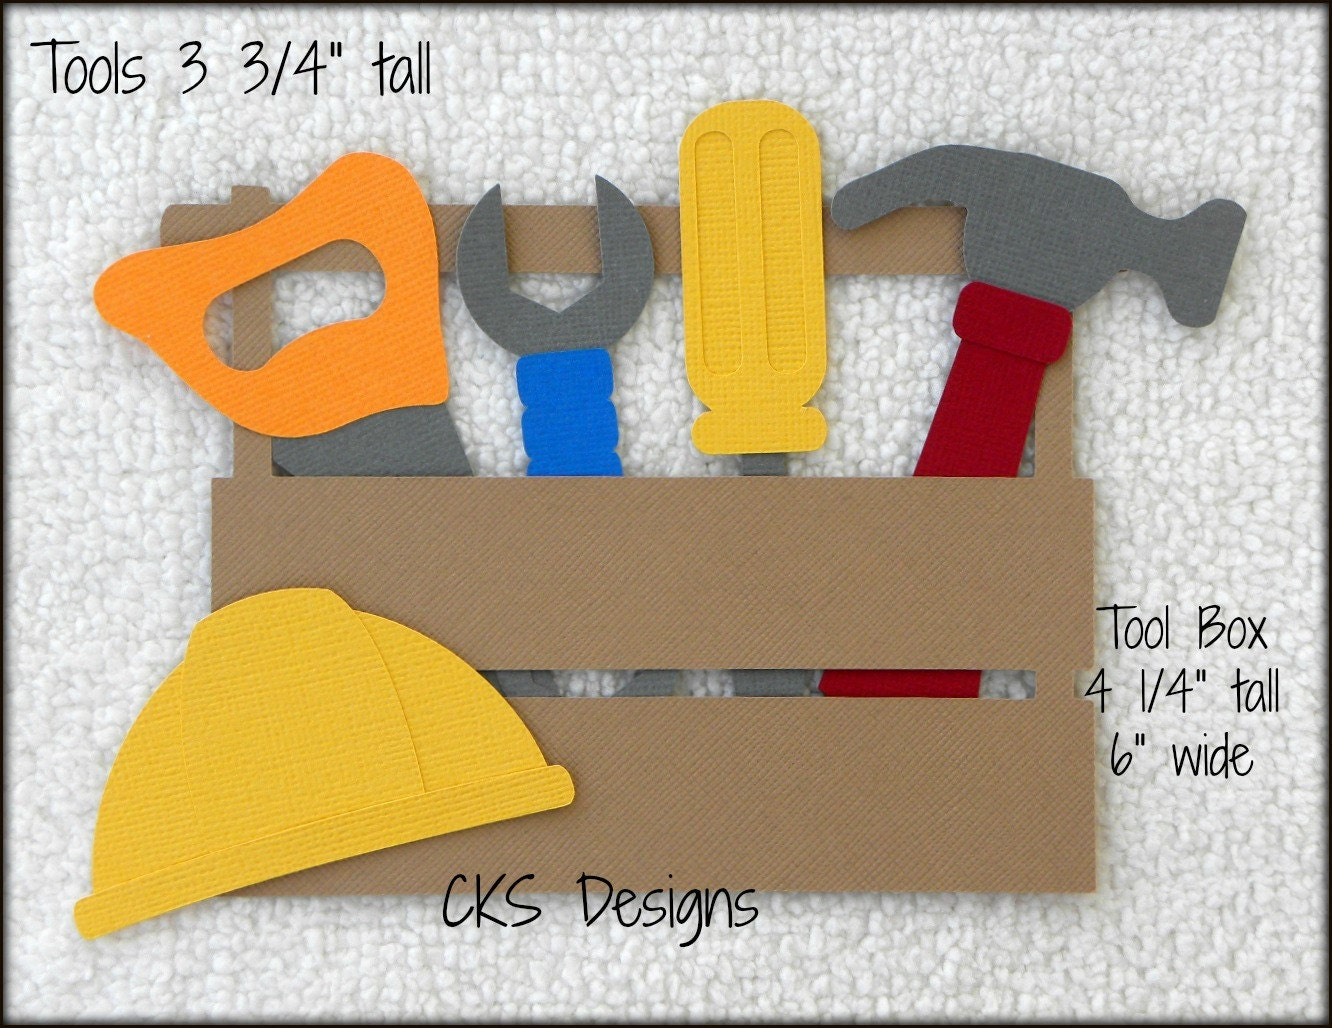 Die Cut Tool Box Amp Tools Scrapbook Page Embellishments For